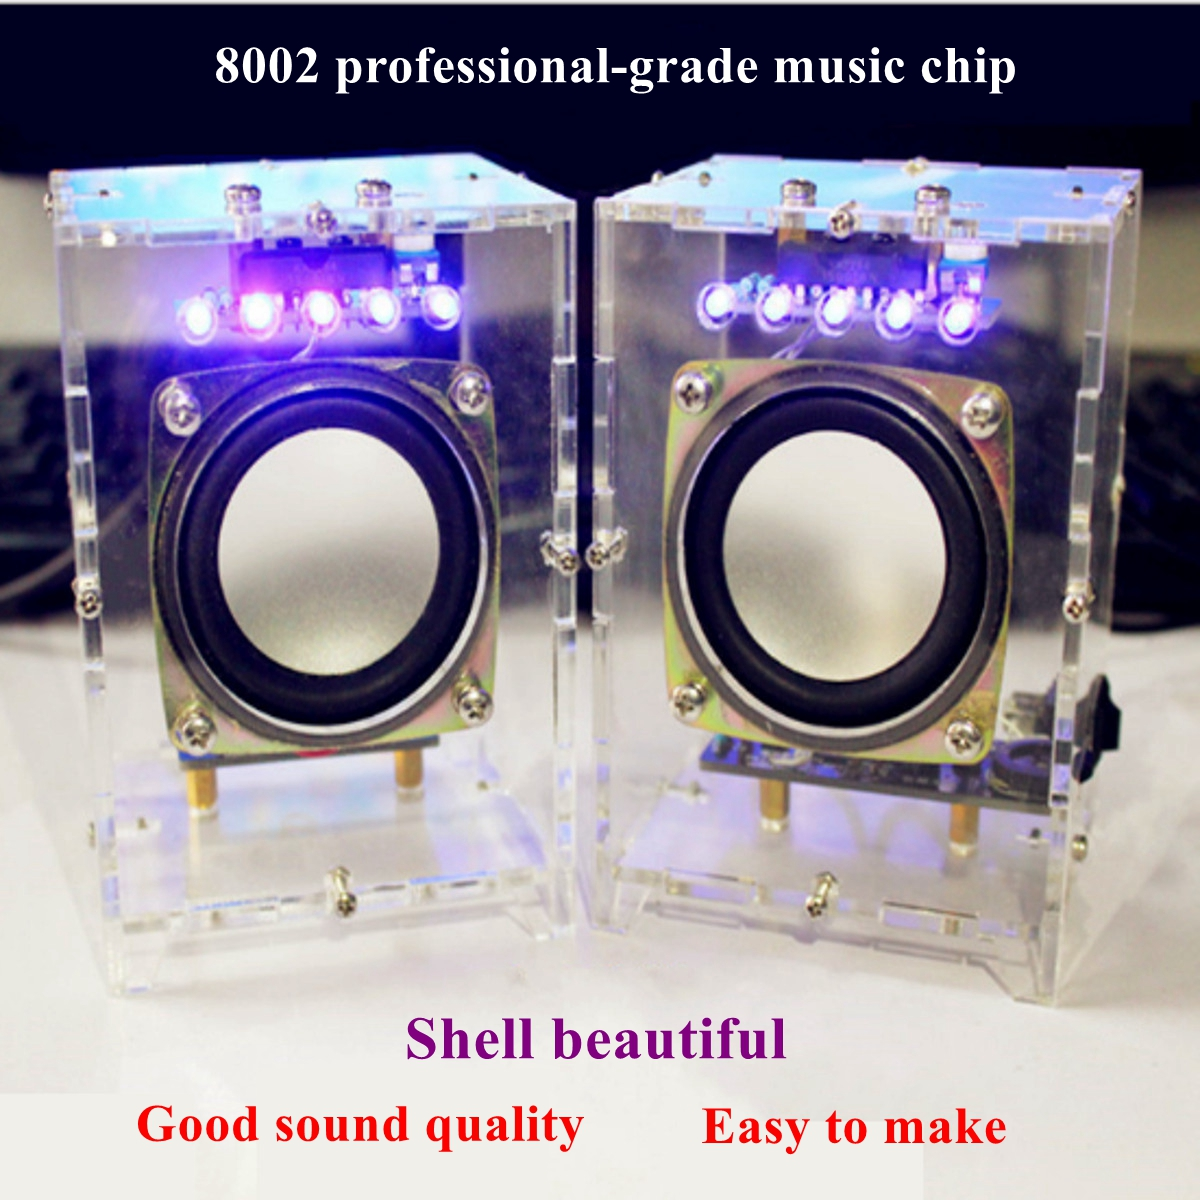 LEORY 8002 Chip LED Speaker Audiophile DIY Kits Mini Computer Speaker  Electric Spare parts CH2 0 Stereo Speaker 70x75x103mm